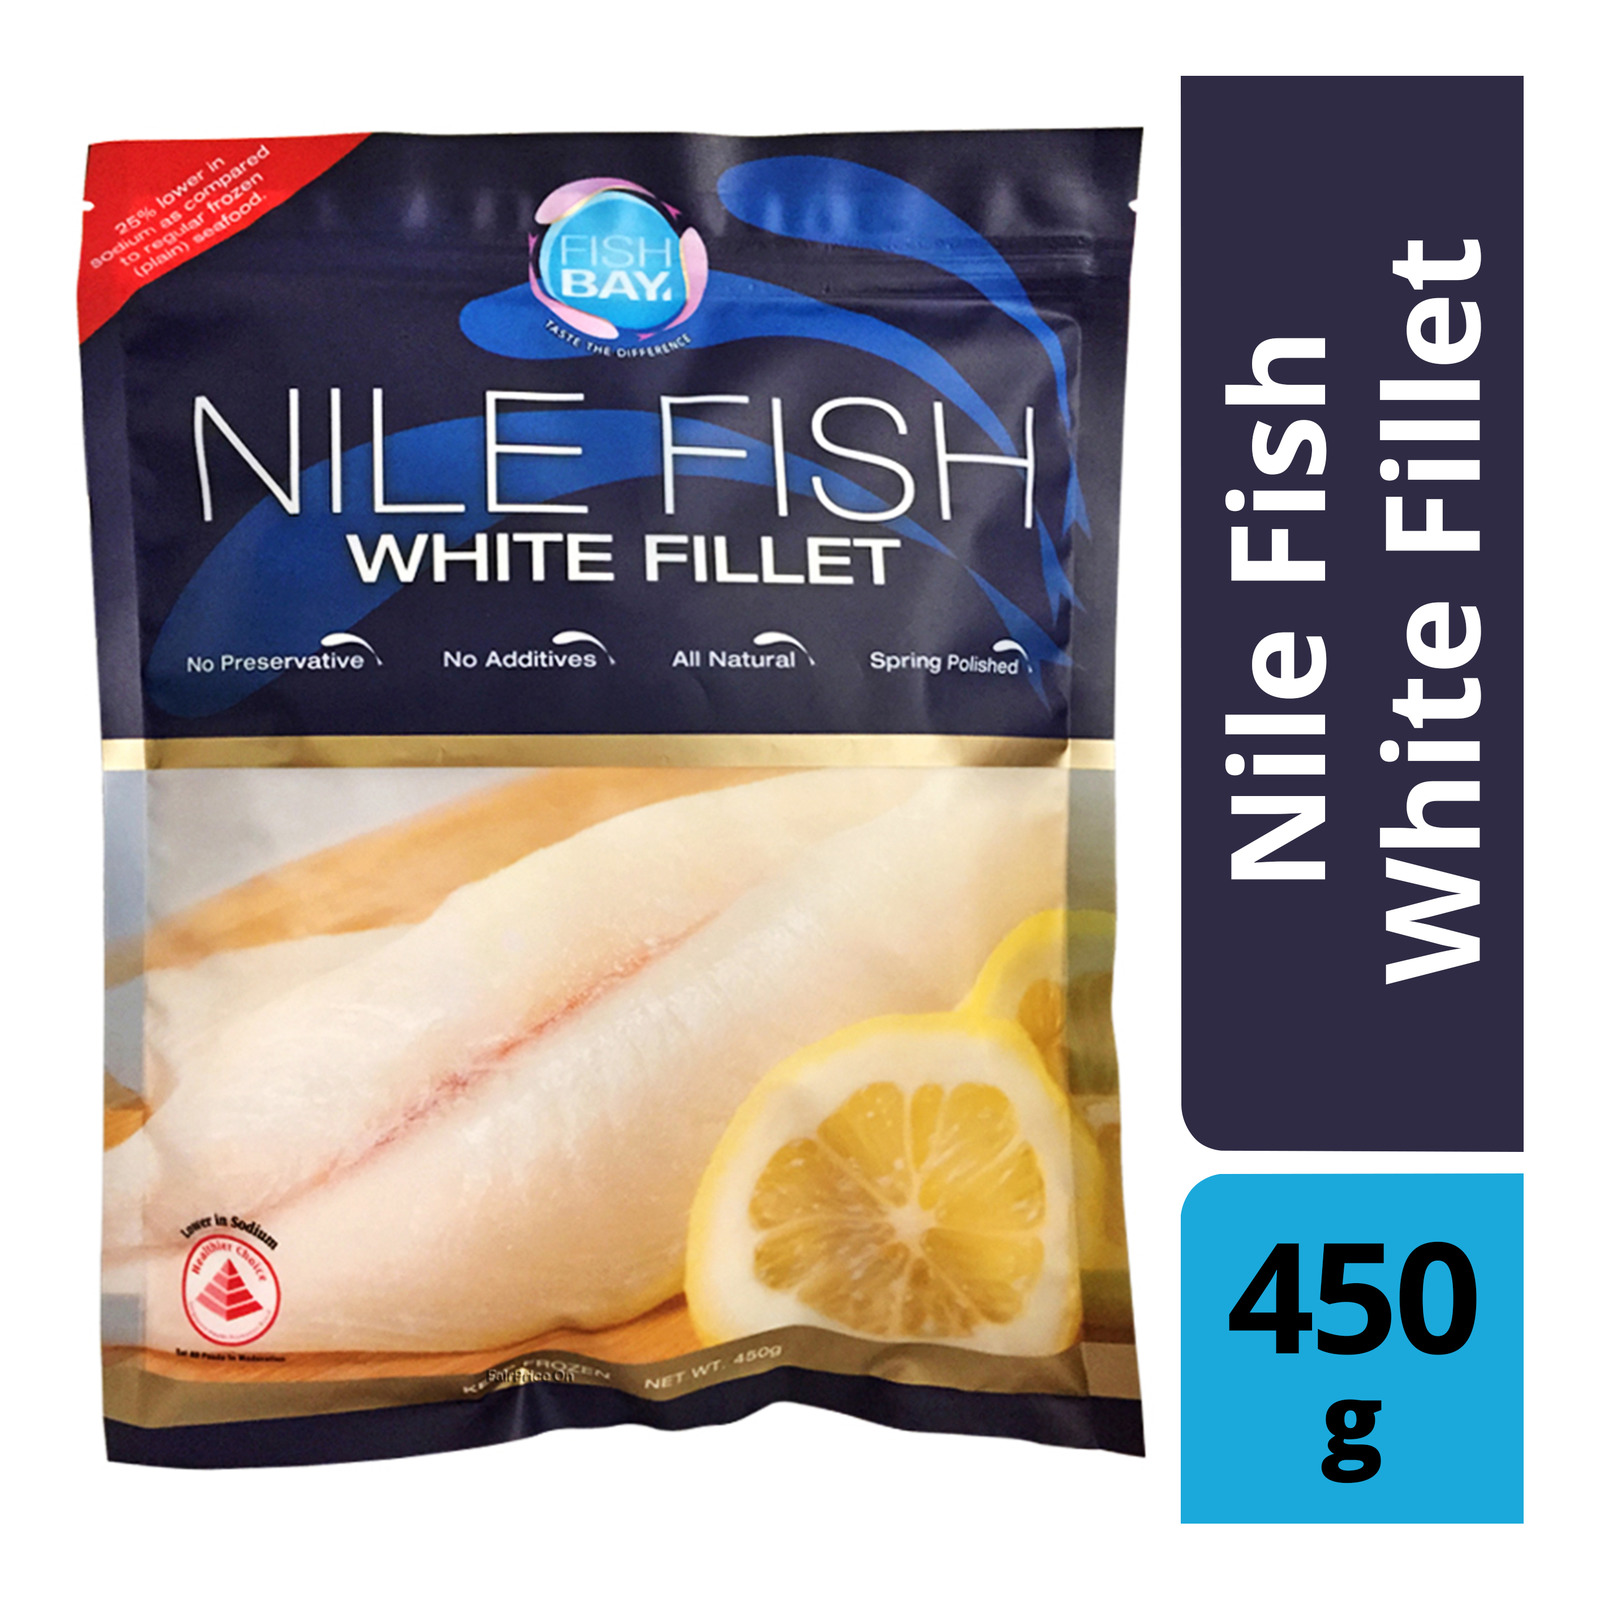 Fish Bay Frozen Nile Fish White Fillet Ntuc Fairprice